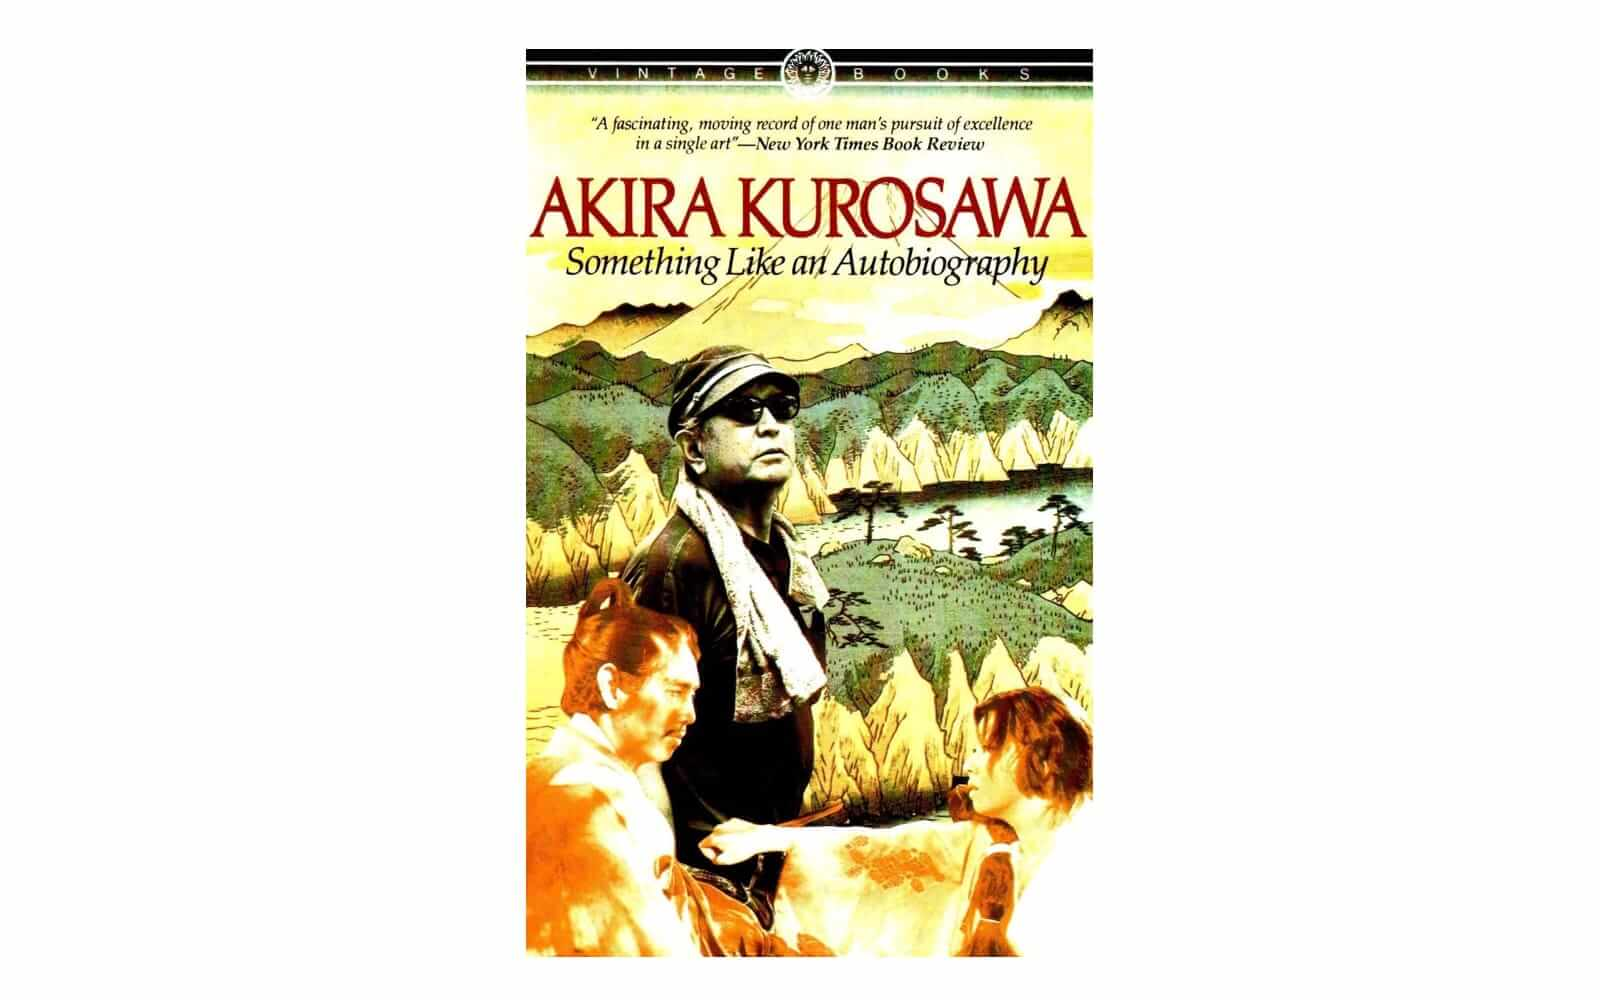 Best Filmmaking Books - The Filmmakers Handbook - Akira Kurosawa - Something Like An Autobiography - StudioBinder